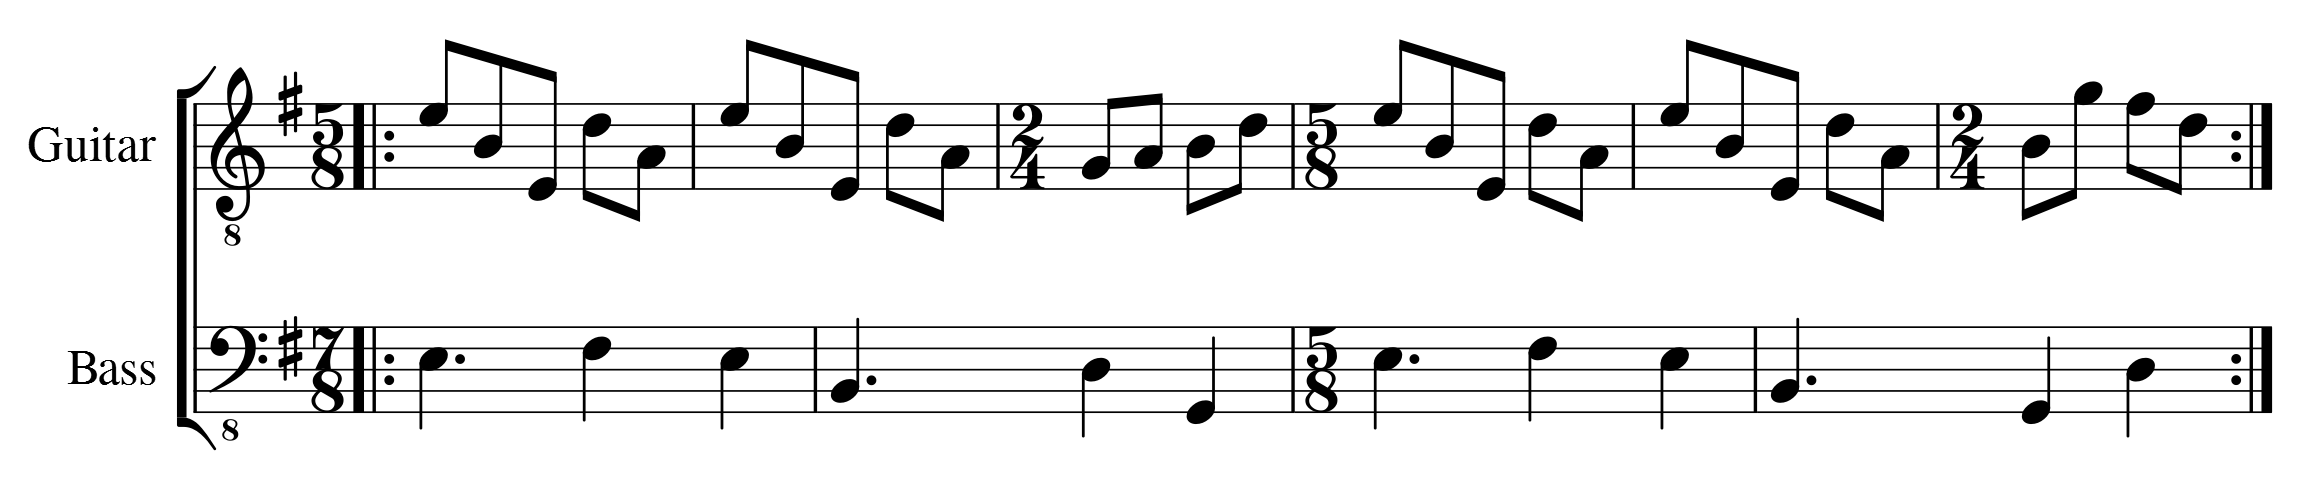 how to add clef in musescore